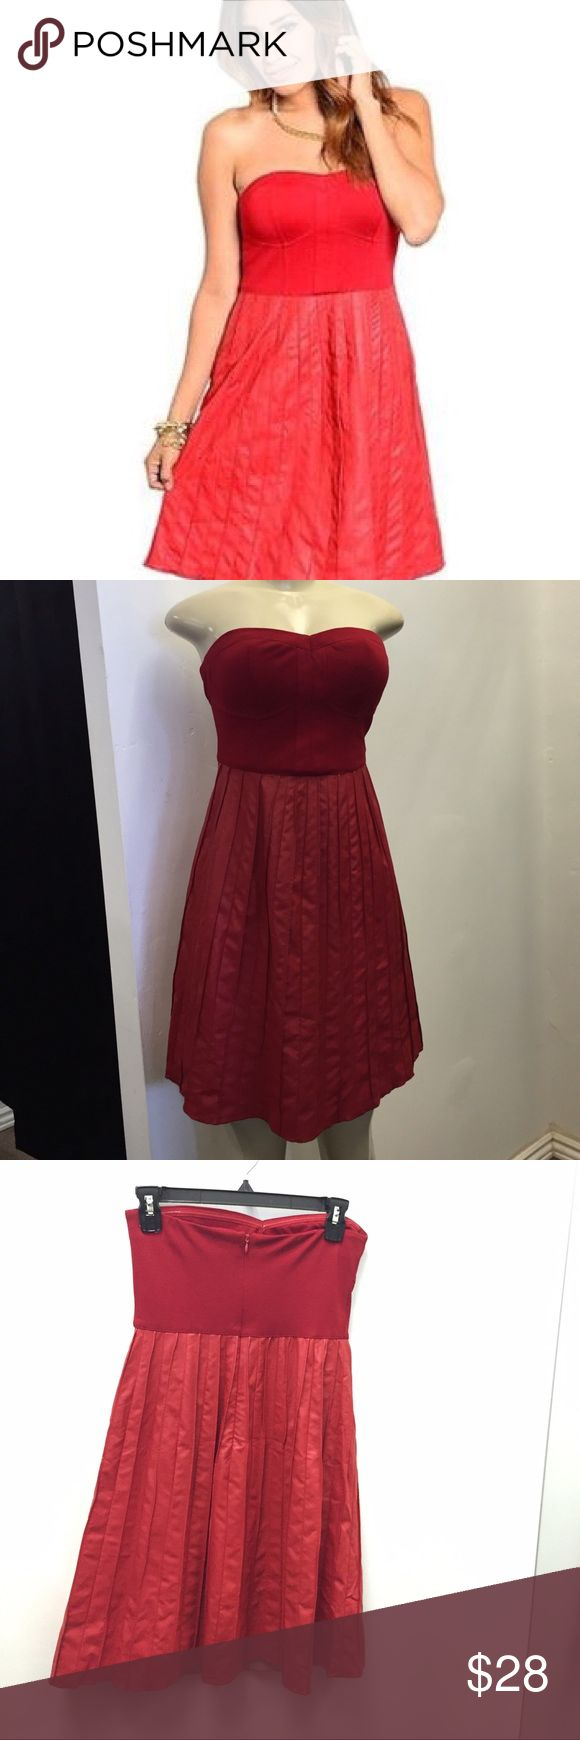 Red Faux Leather Pleated Strapless Dress Stretch Knit Cotton top section with Pleated Faux Leather skirt. The perfect dinner date dress!! Ark & Co Dresses Mini